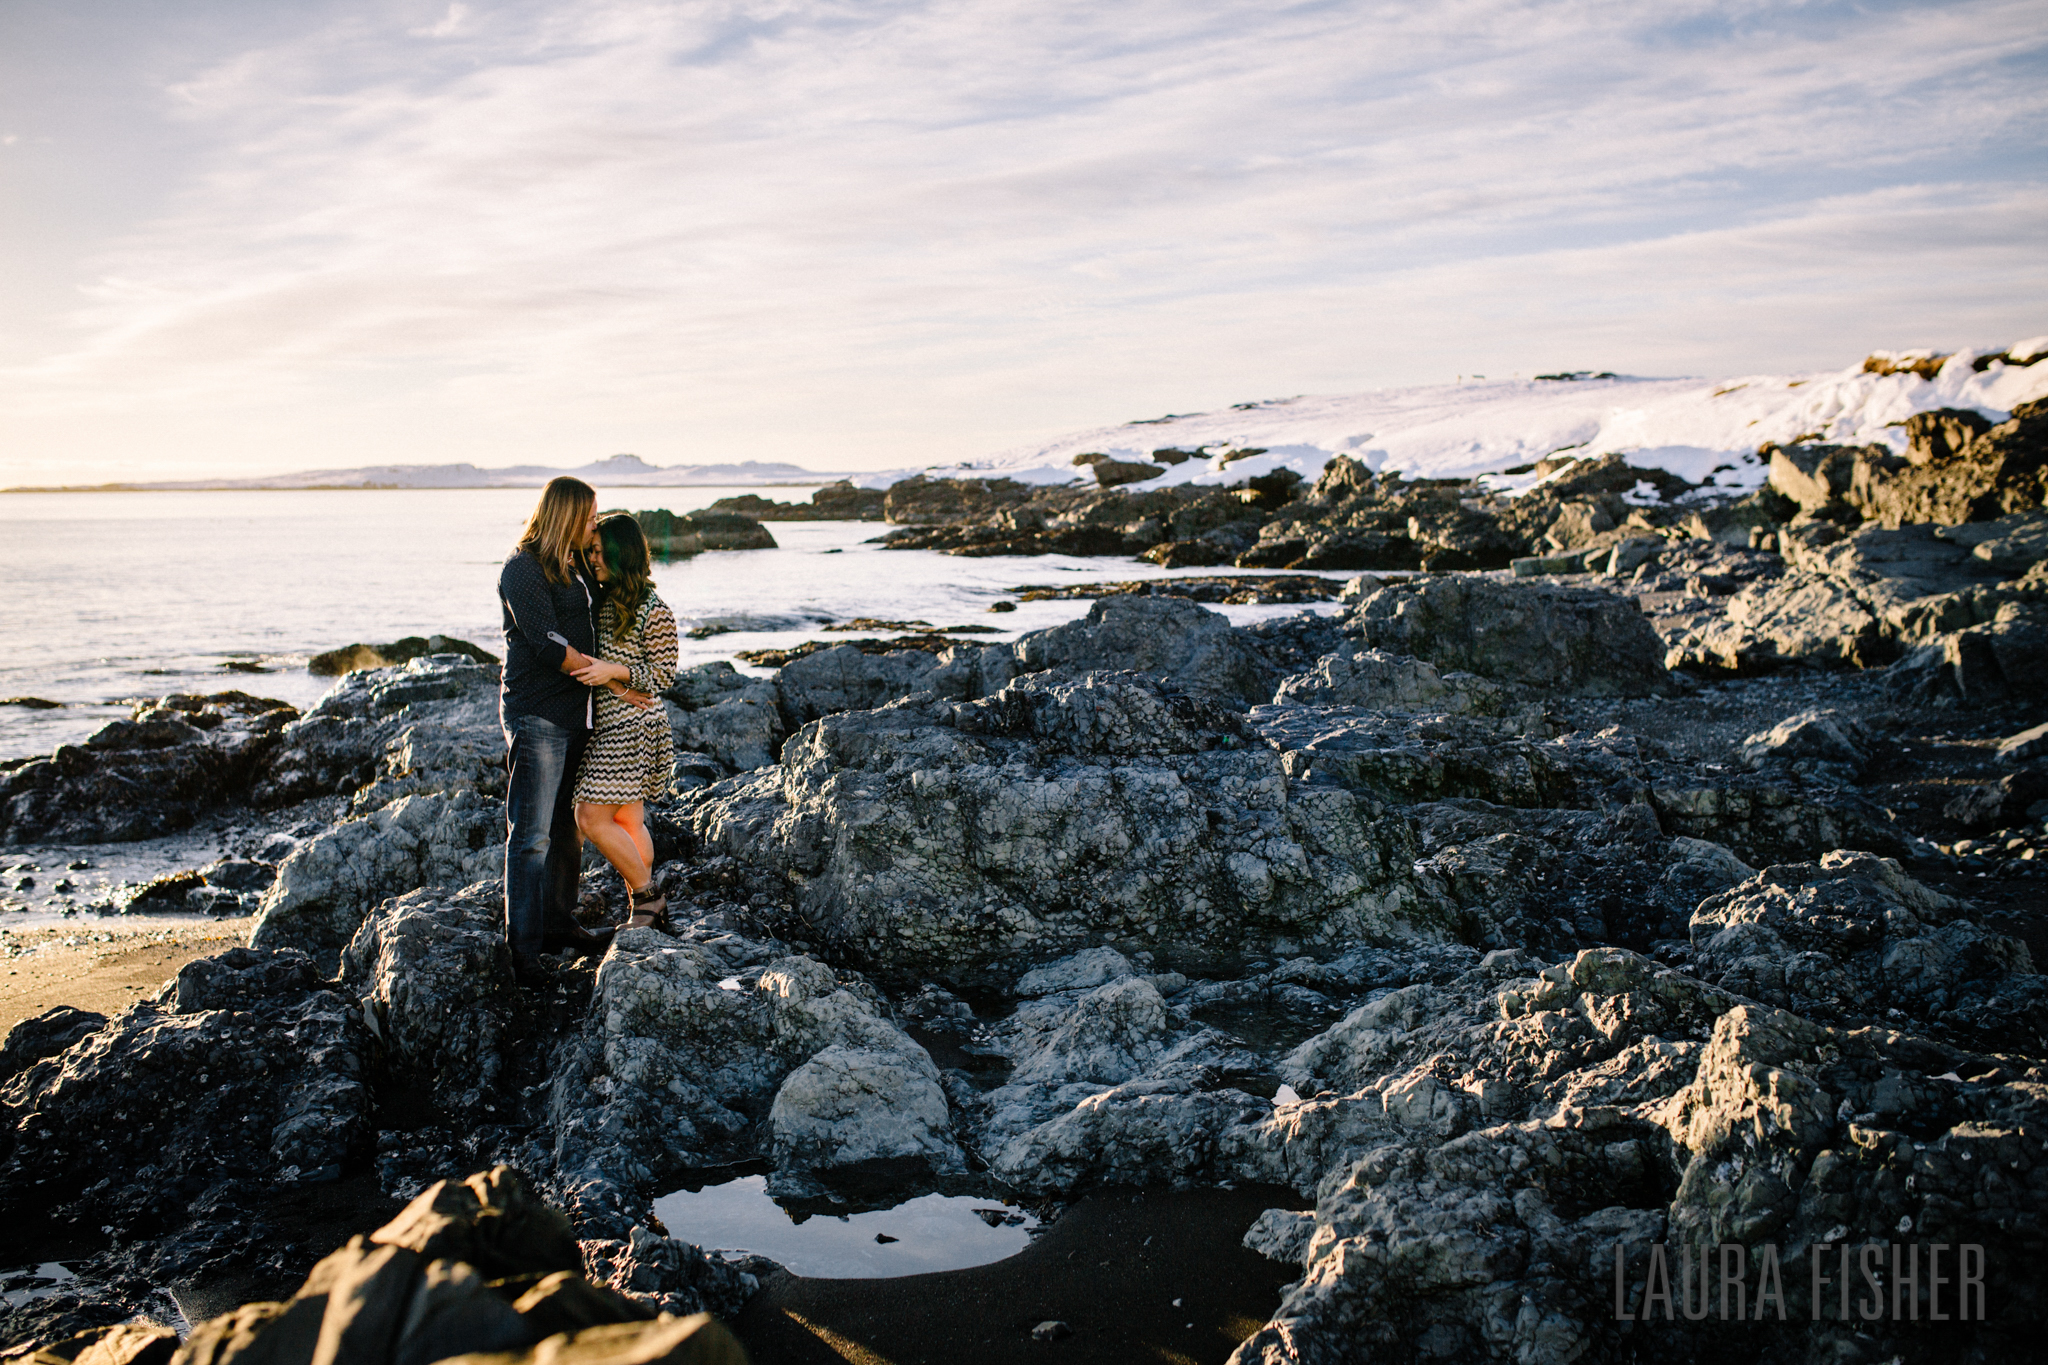 iceland-black-sand-beach-engagement-laura-fisher-photography-0007-2.jpg